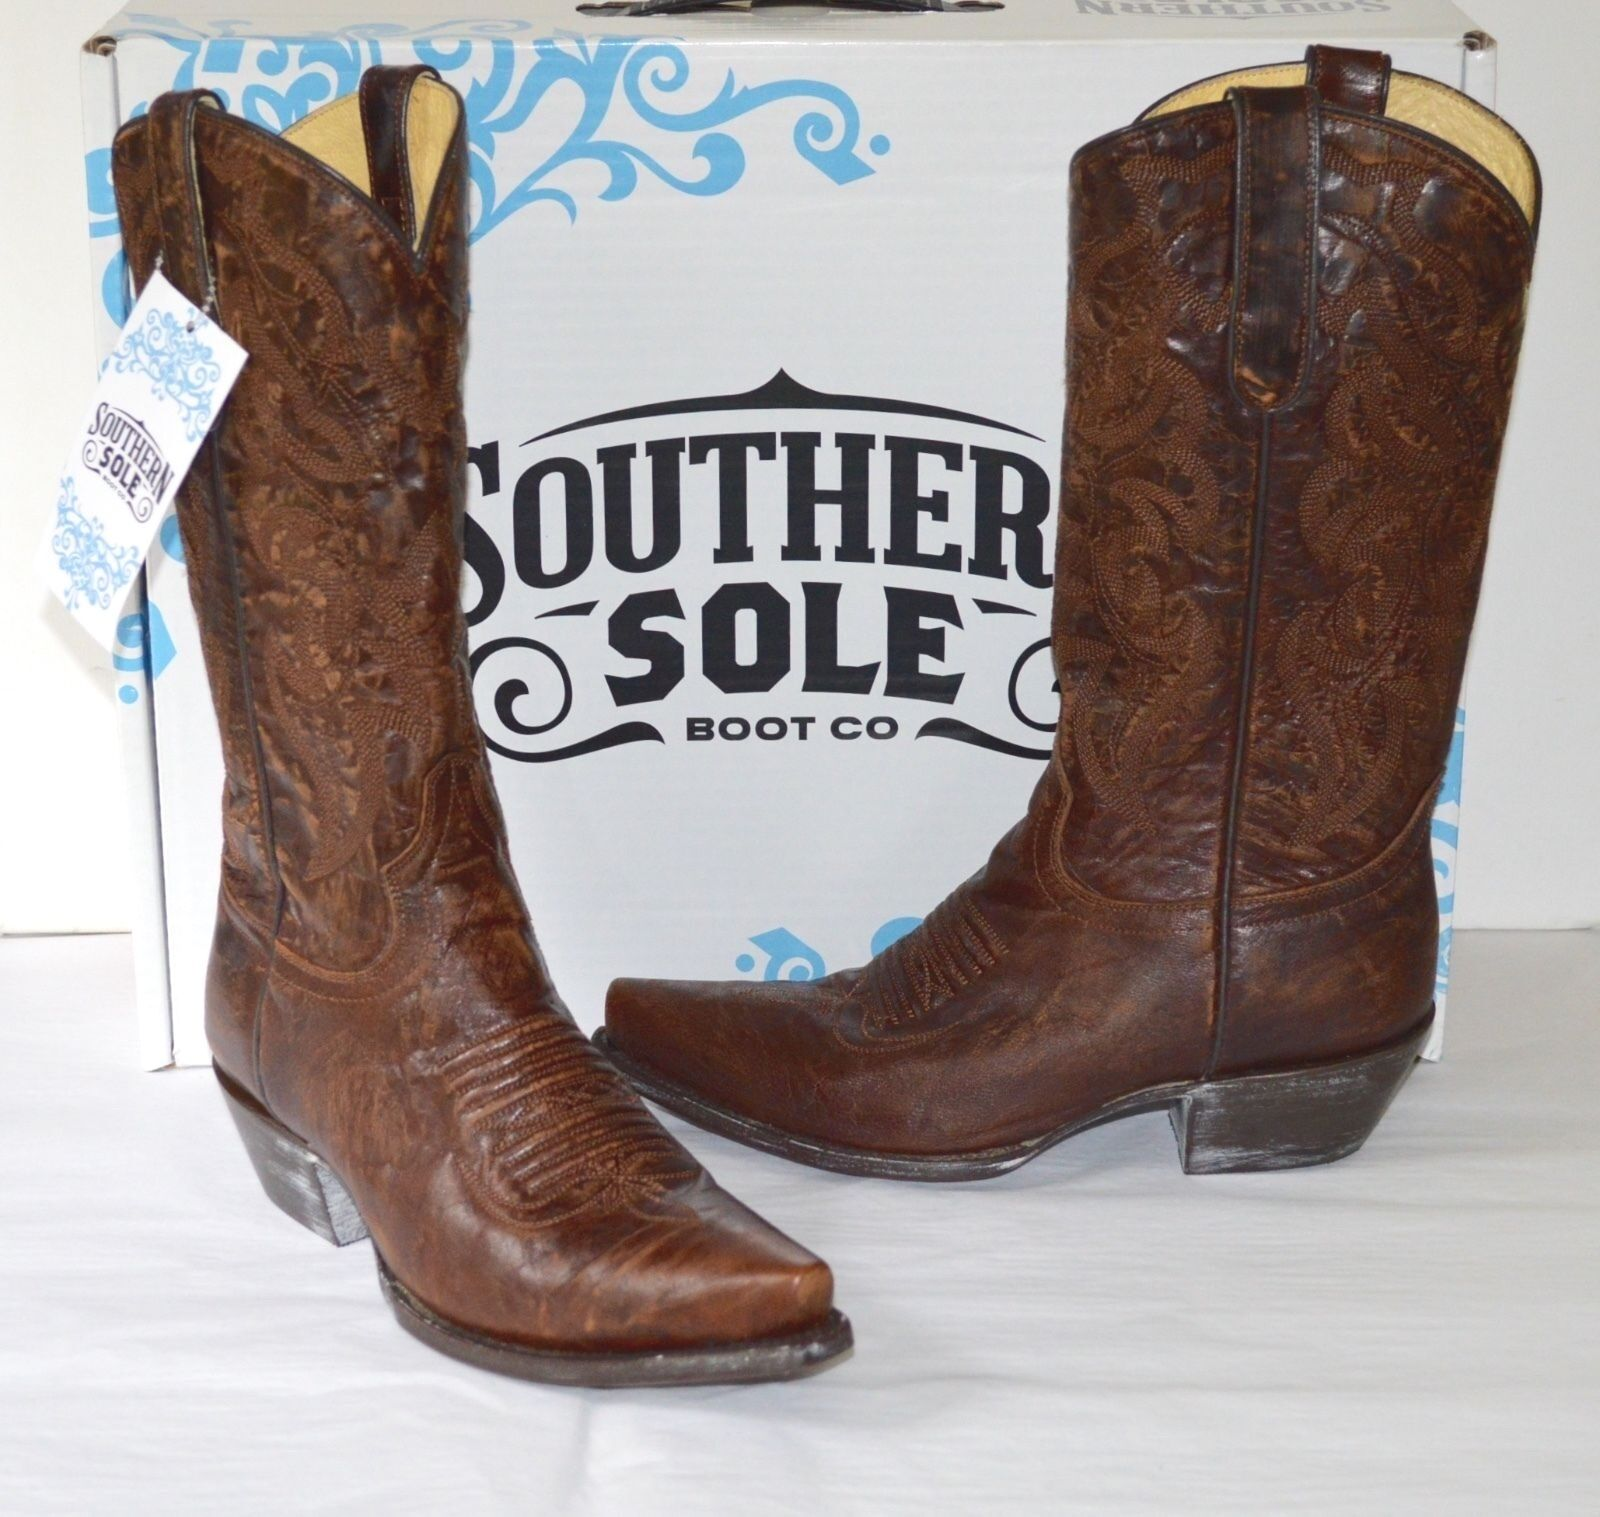 New  229 Southern Sole Boot Co Western Cowboy Tall Stivali Brass BEL-FW04STL-1